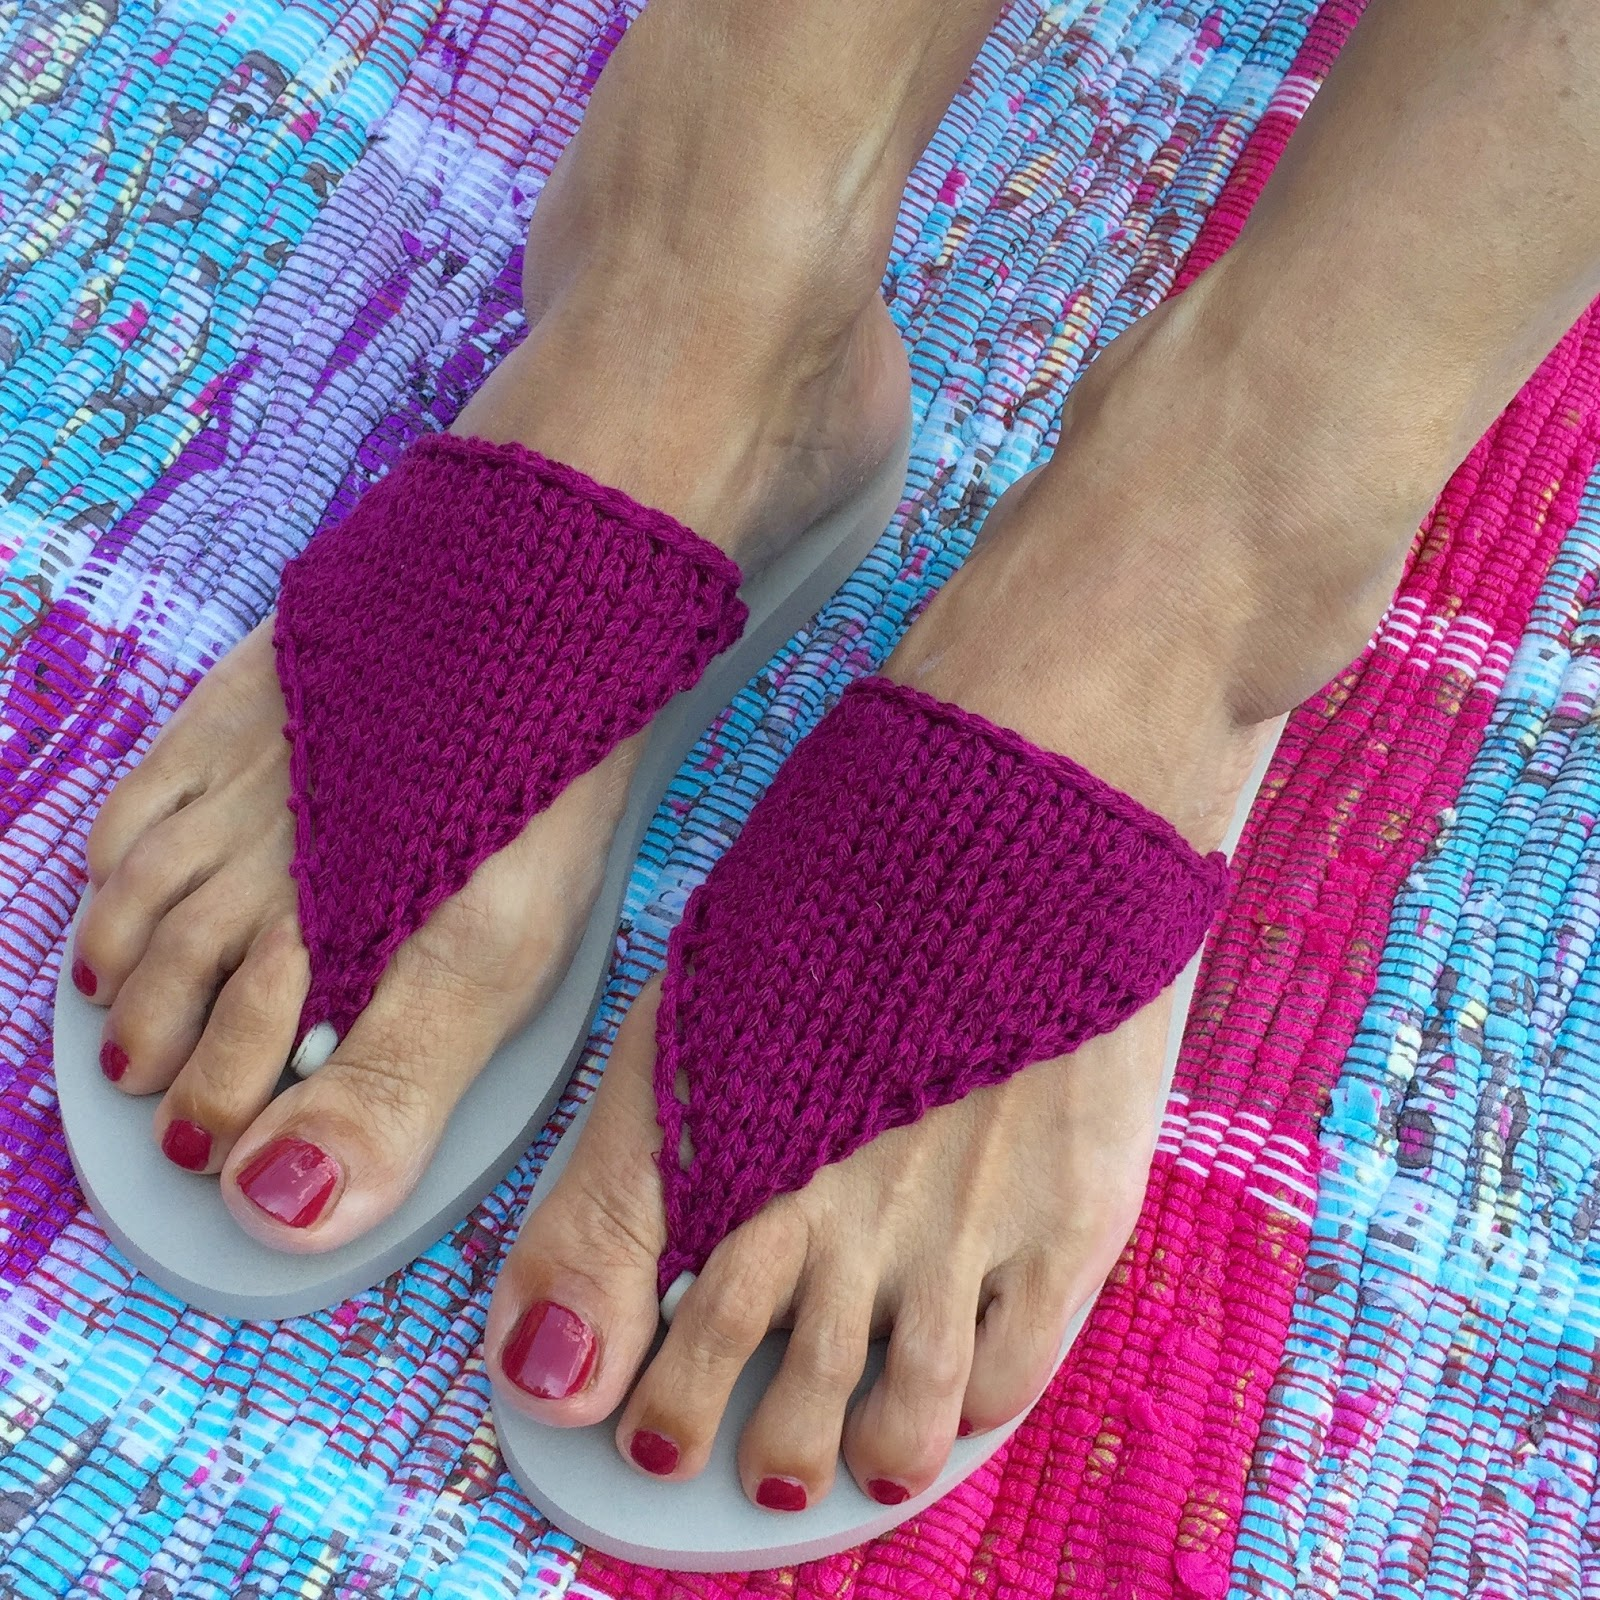 Knitting Pattern For Flop : DIY Knitted Flip-flop Recipe Crafts from the Cwtch